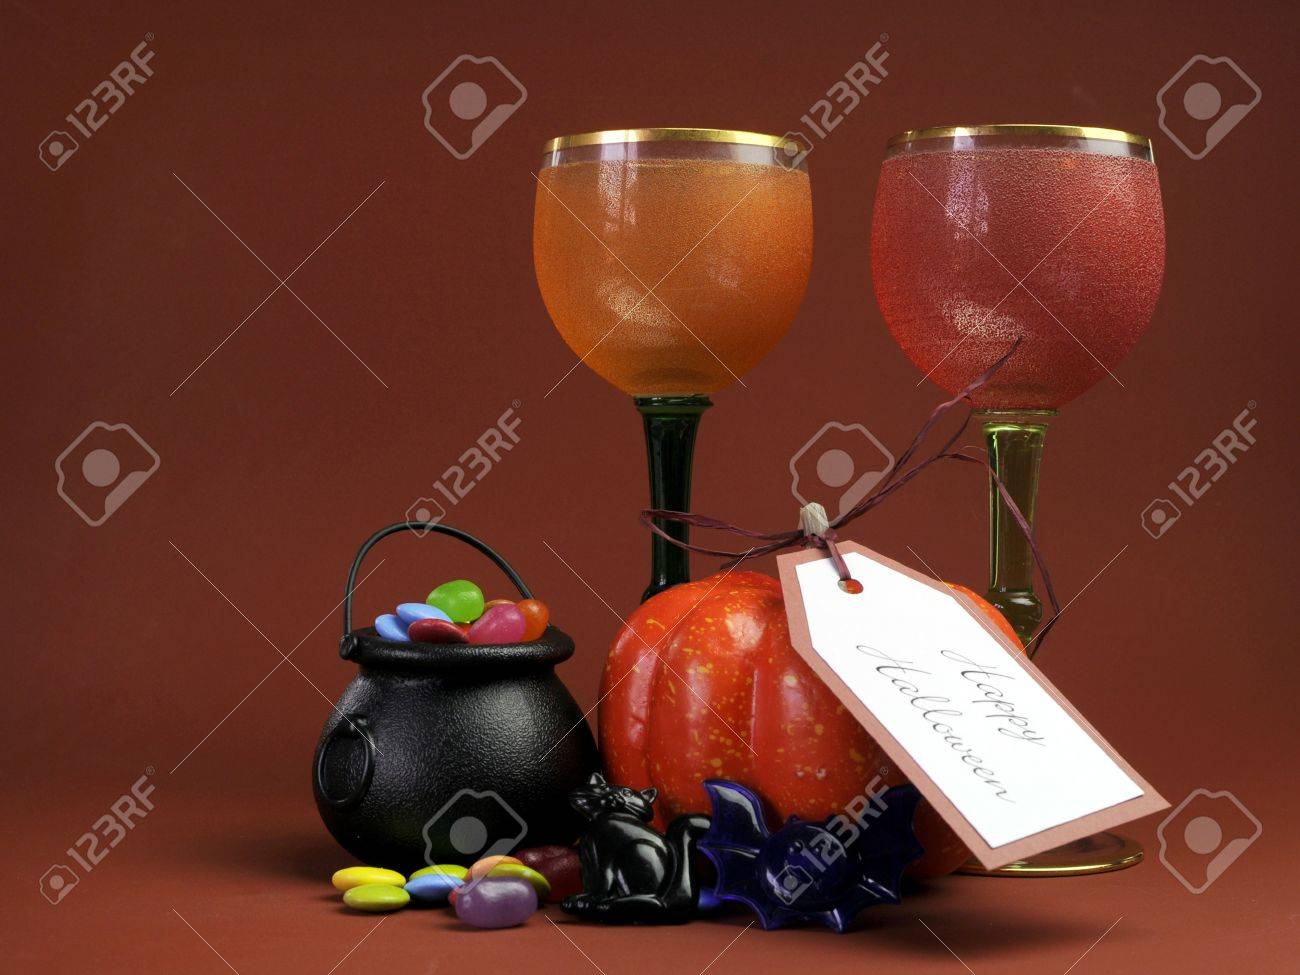 Happy Halloween Table Setting Decorations With Gothic Red And ...